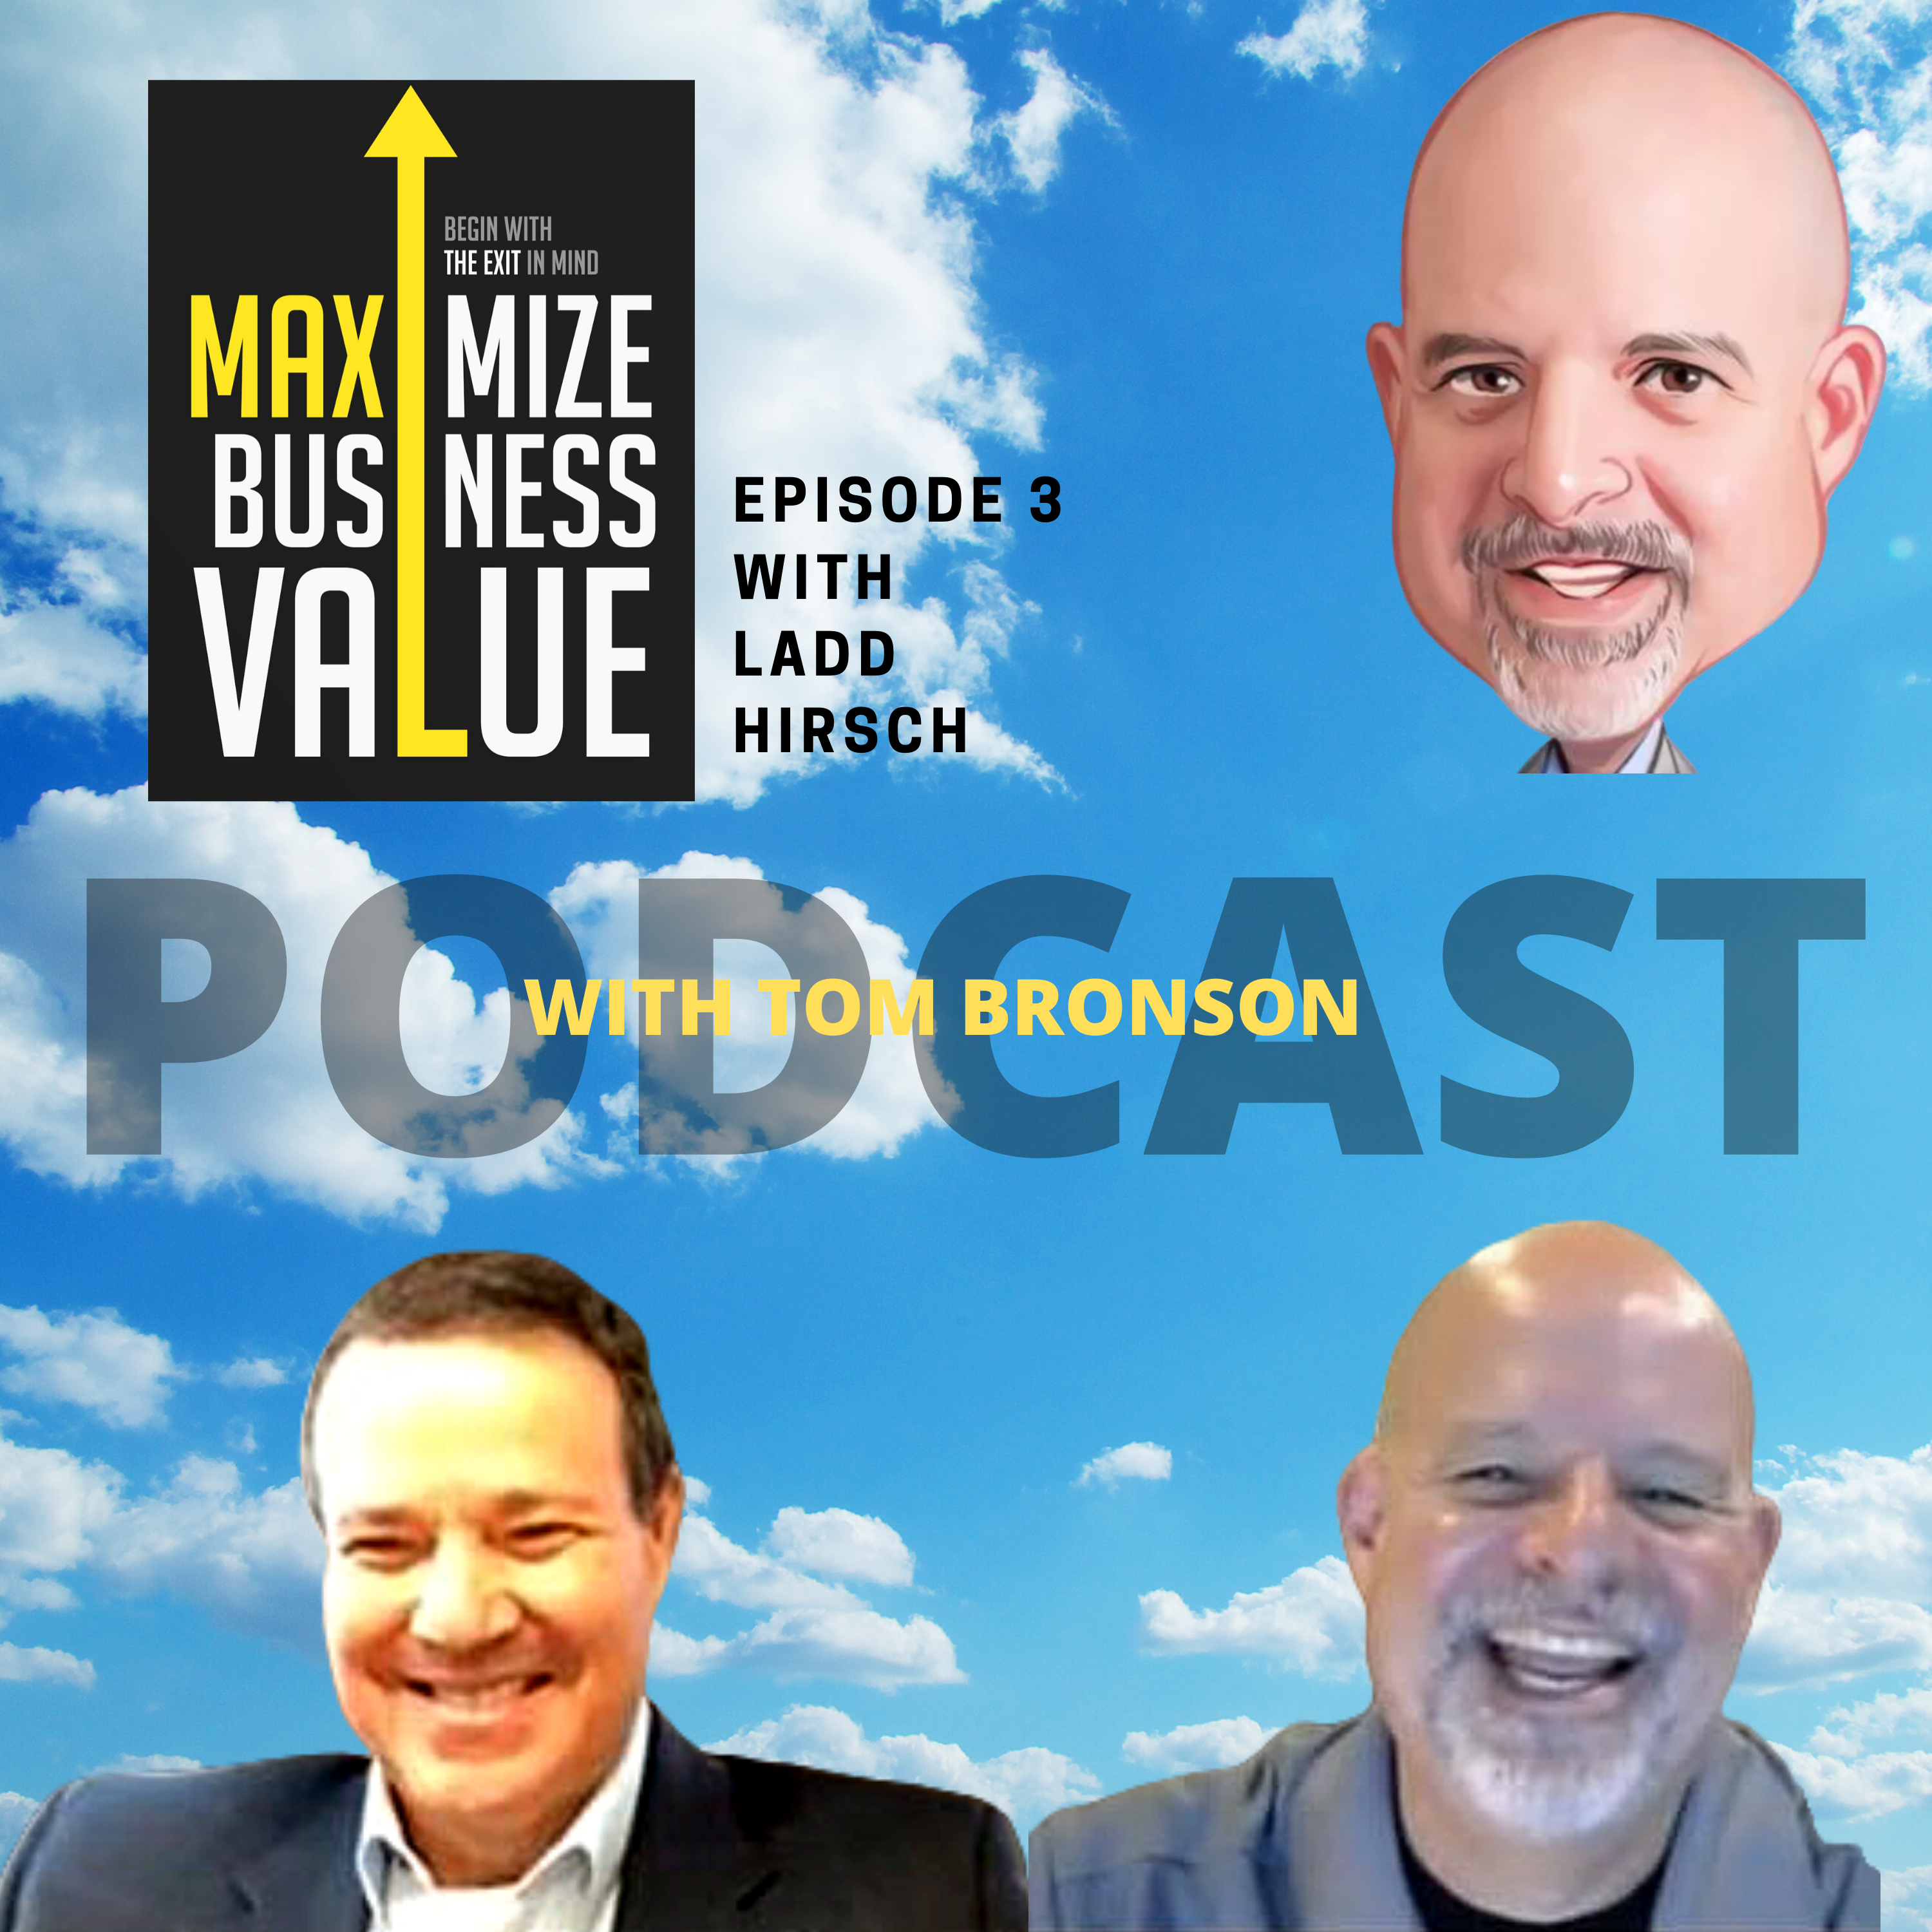 Maximize Business Value Podcast with Ladd Hirsch